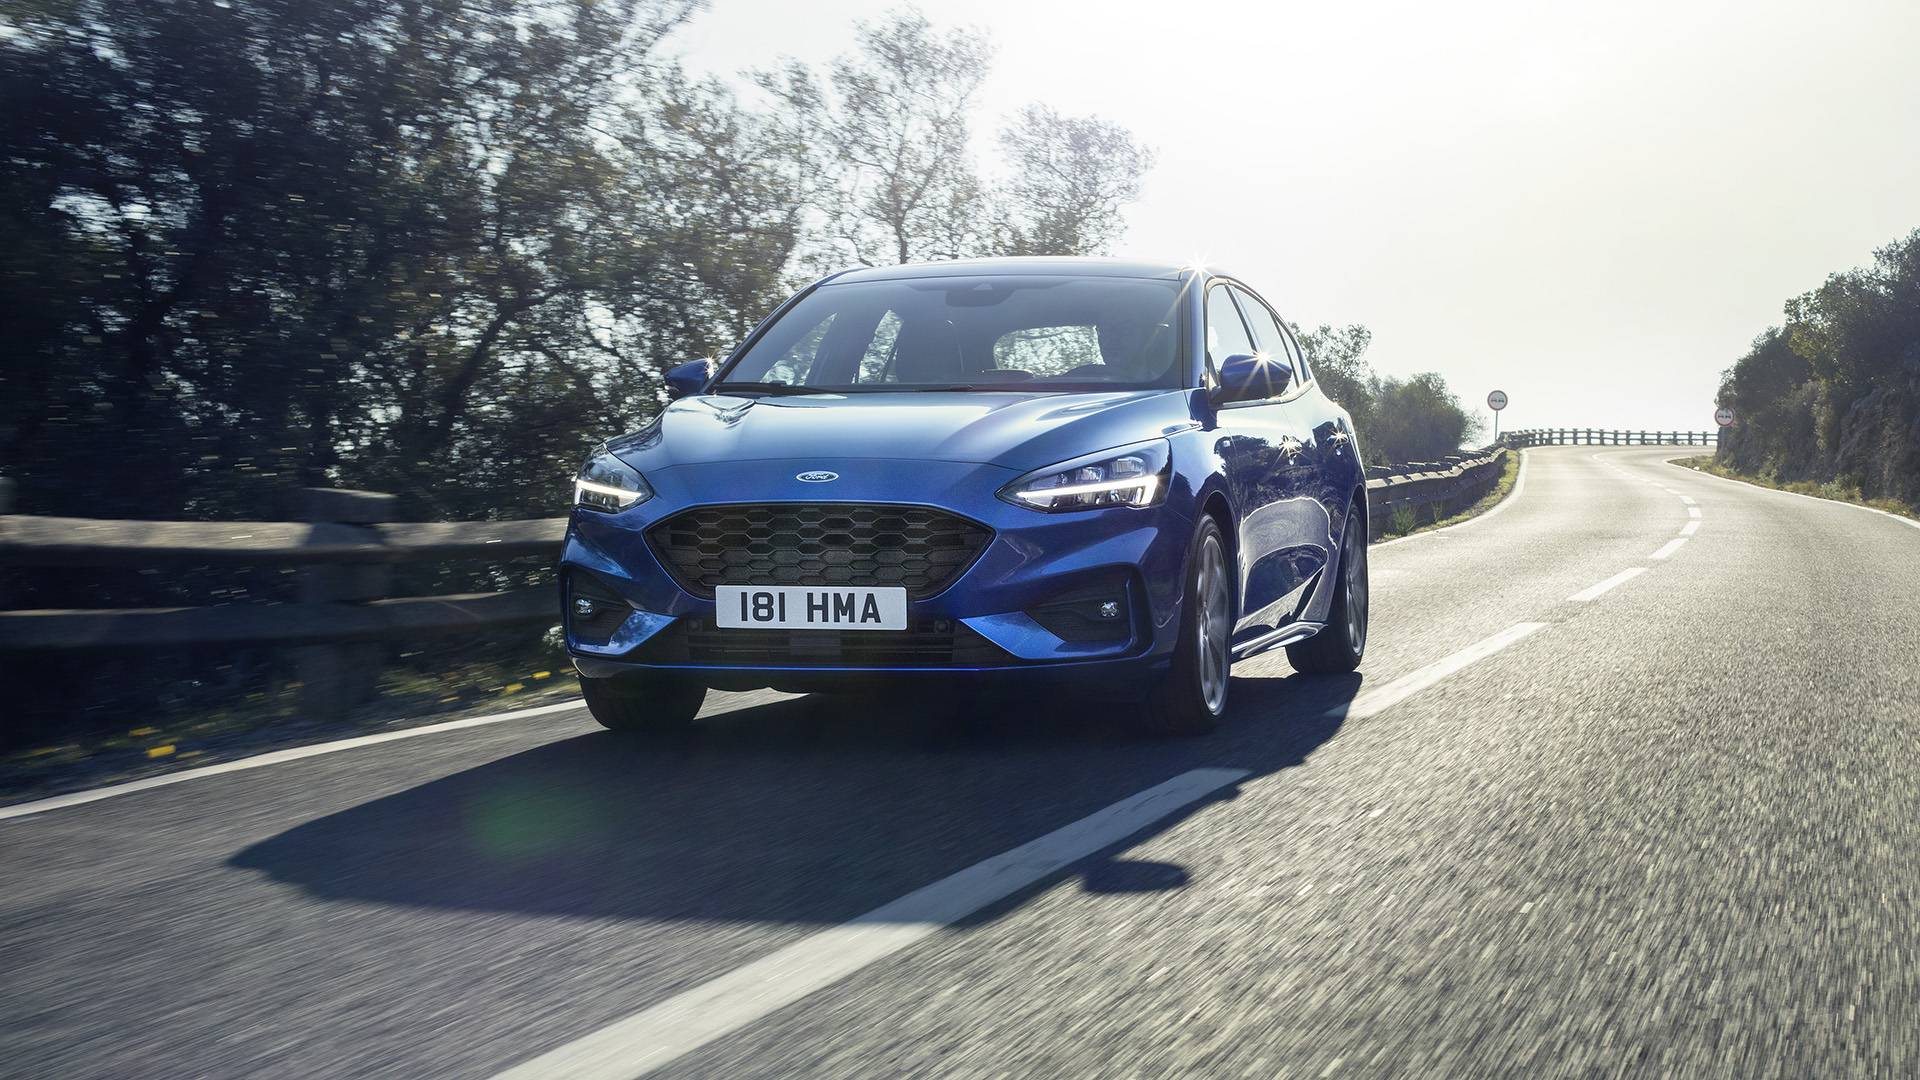 ford passenger car lineup to consist of only two models in north america by 2020